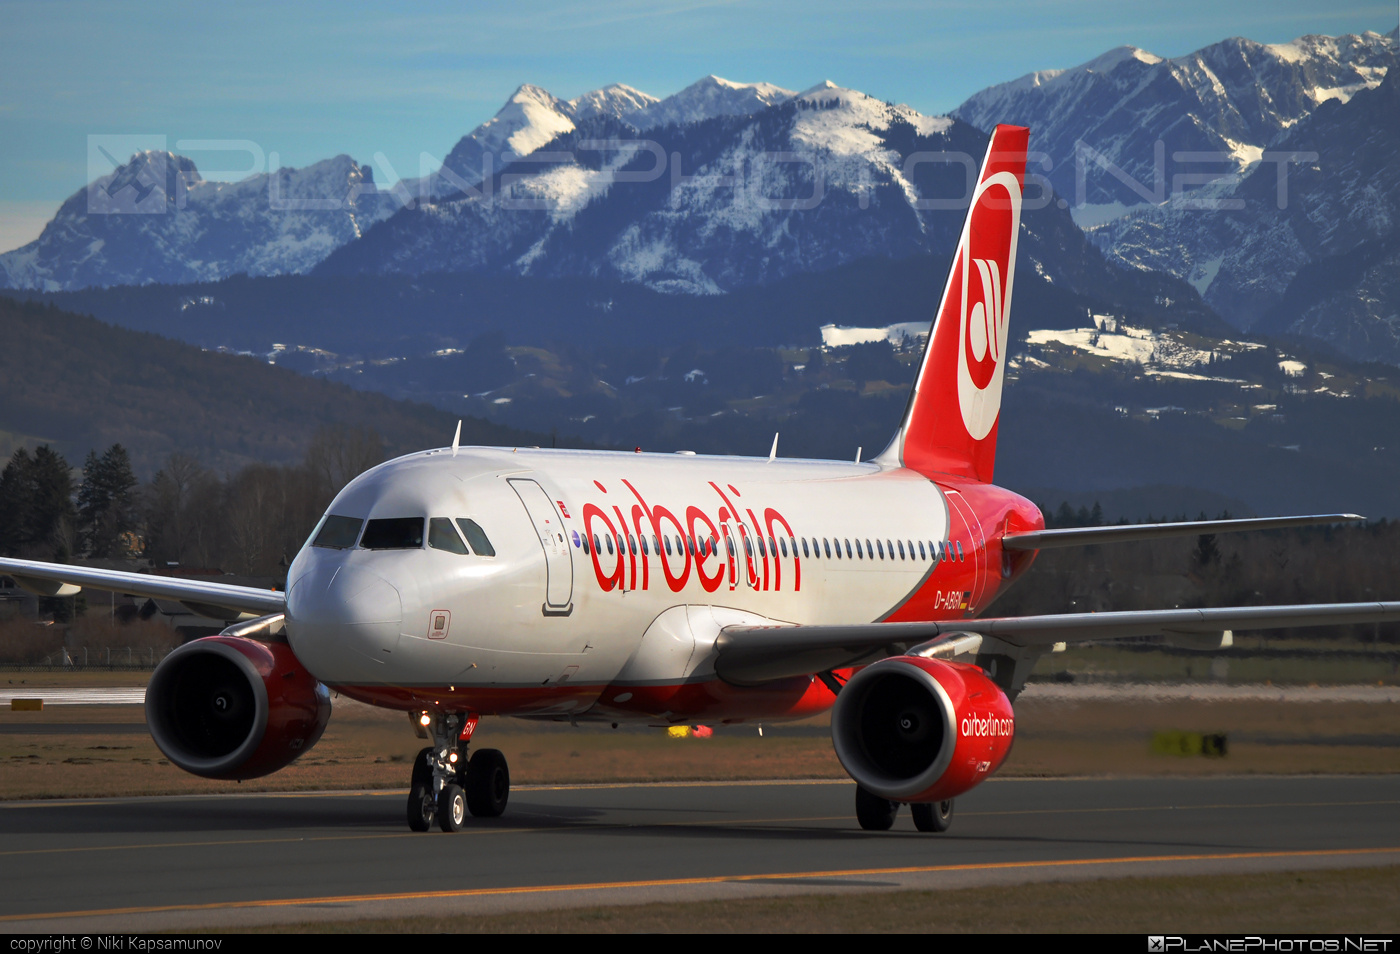 Airbus A319-112 - D-ABGN operated by Air Berlin #a319 #a320family #airberlin #airbus #airbus319